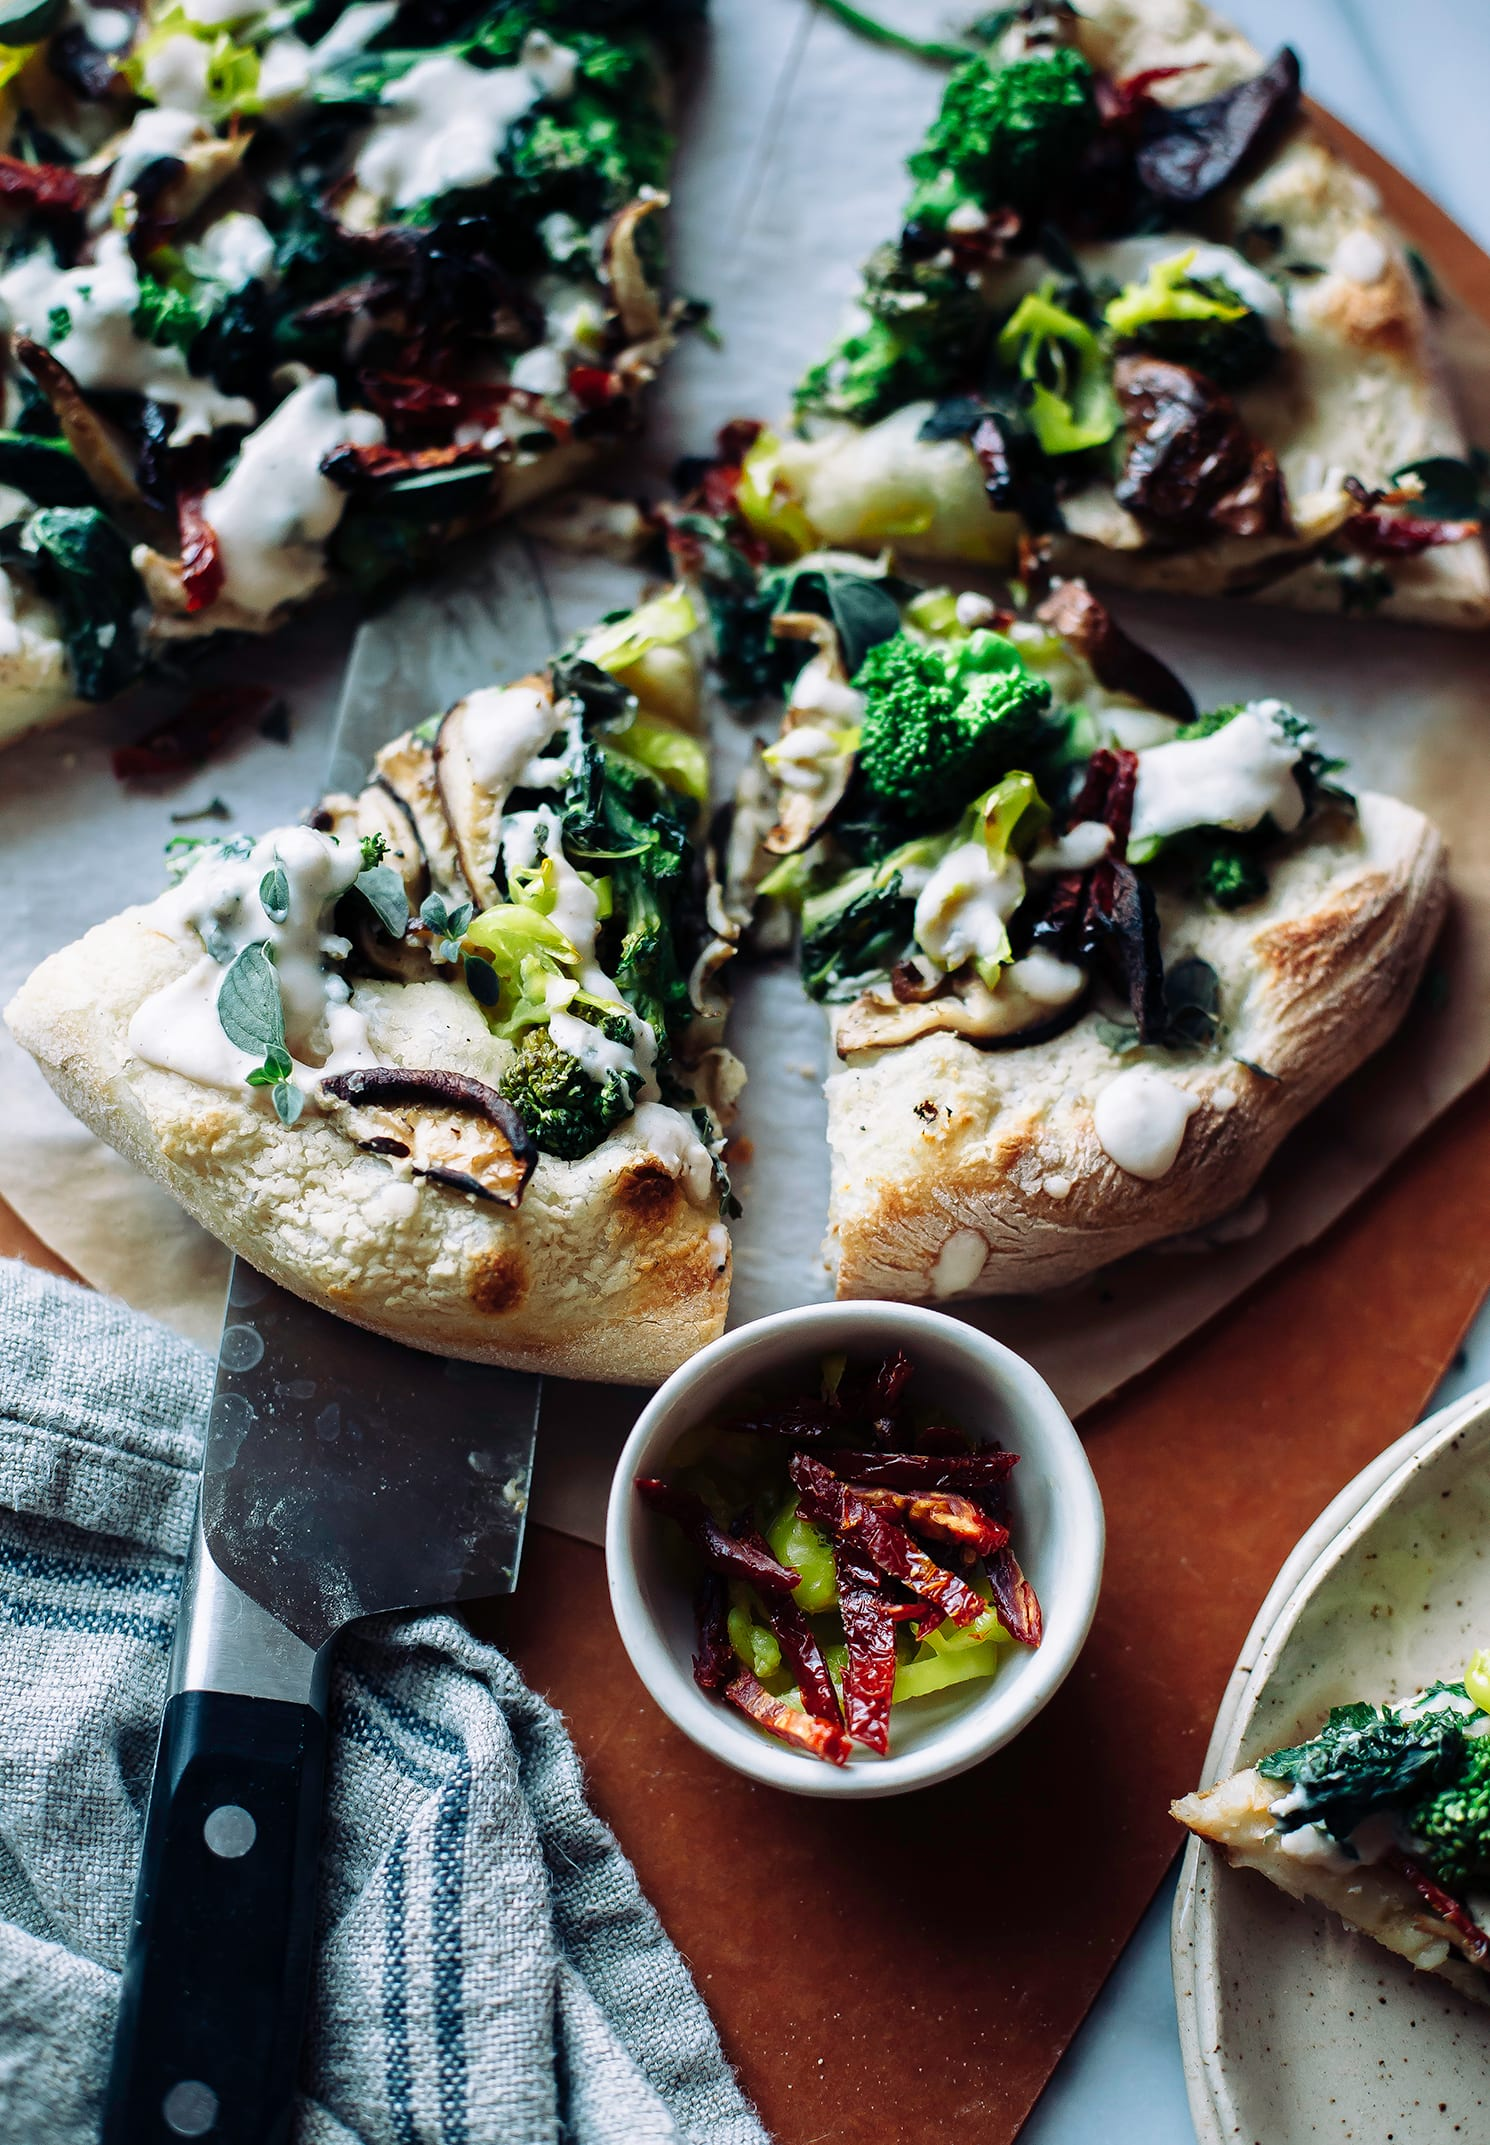 Spicy Vegan White Pizza with Broccoli Rabe & Truffle Cream - The First Mess